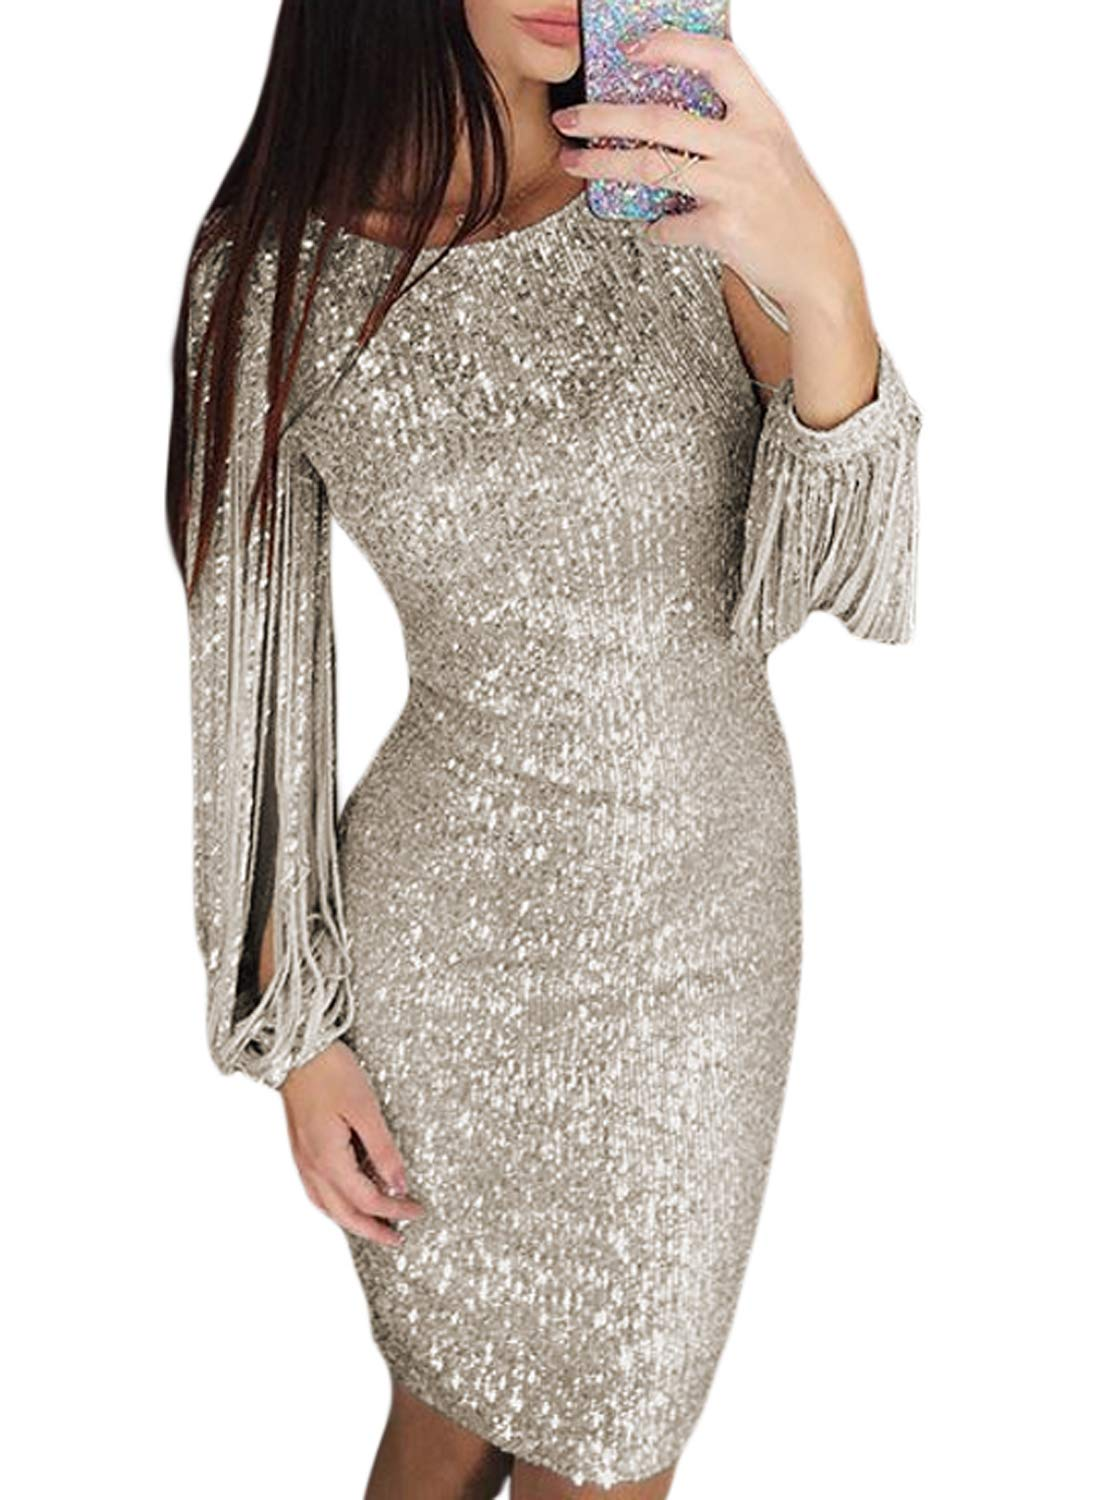 Party Dresses - Womens Elegant Sequin Tassel Sleeve Bodycon Cocktail Party Midi Dress